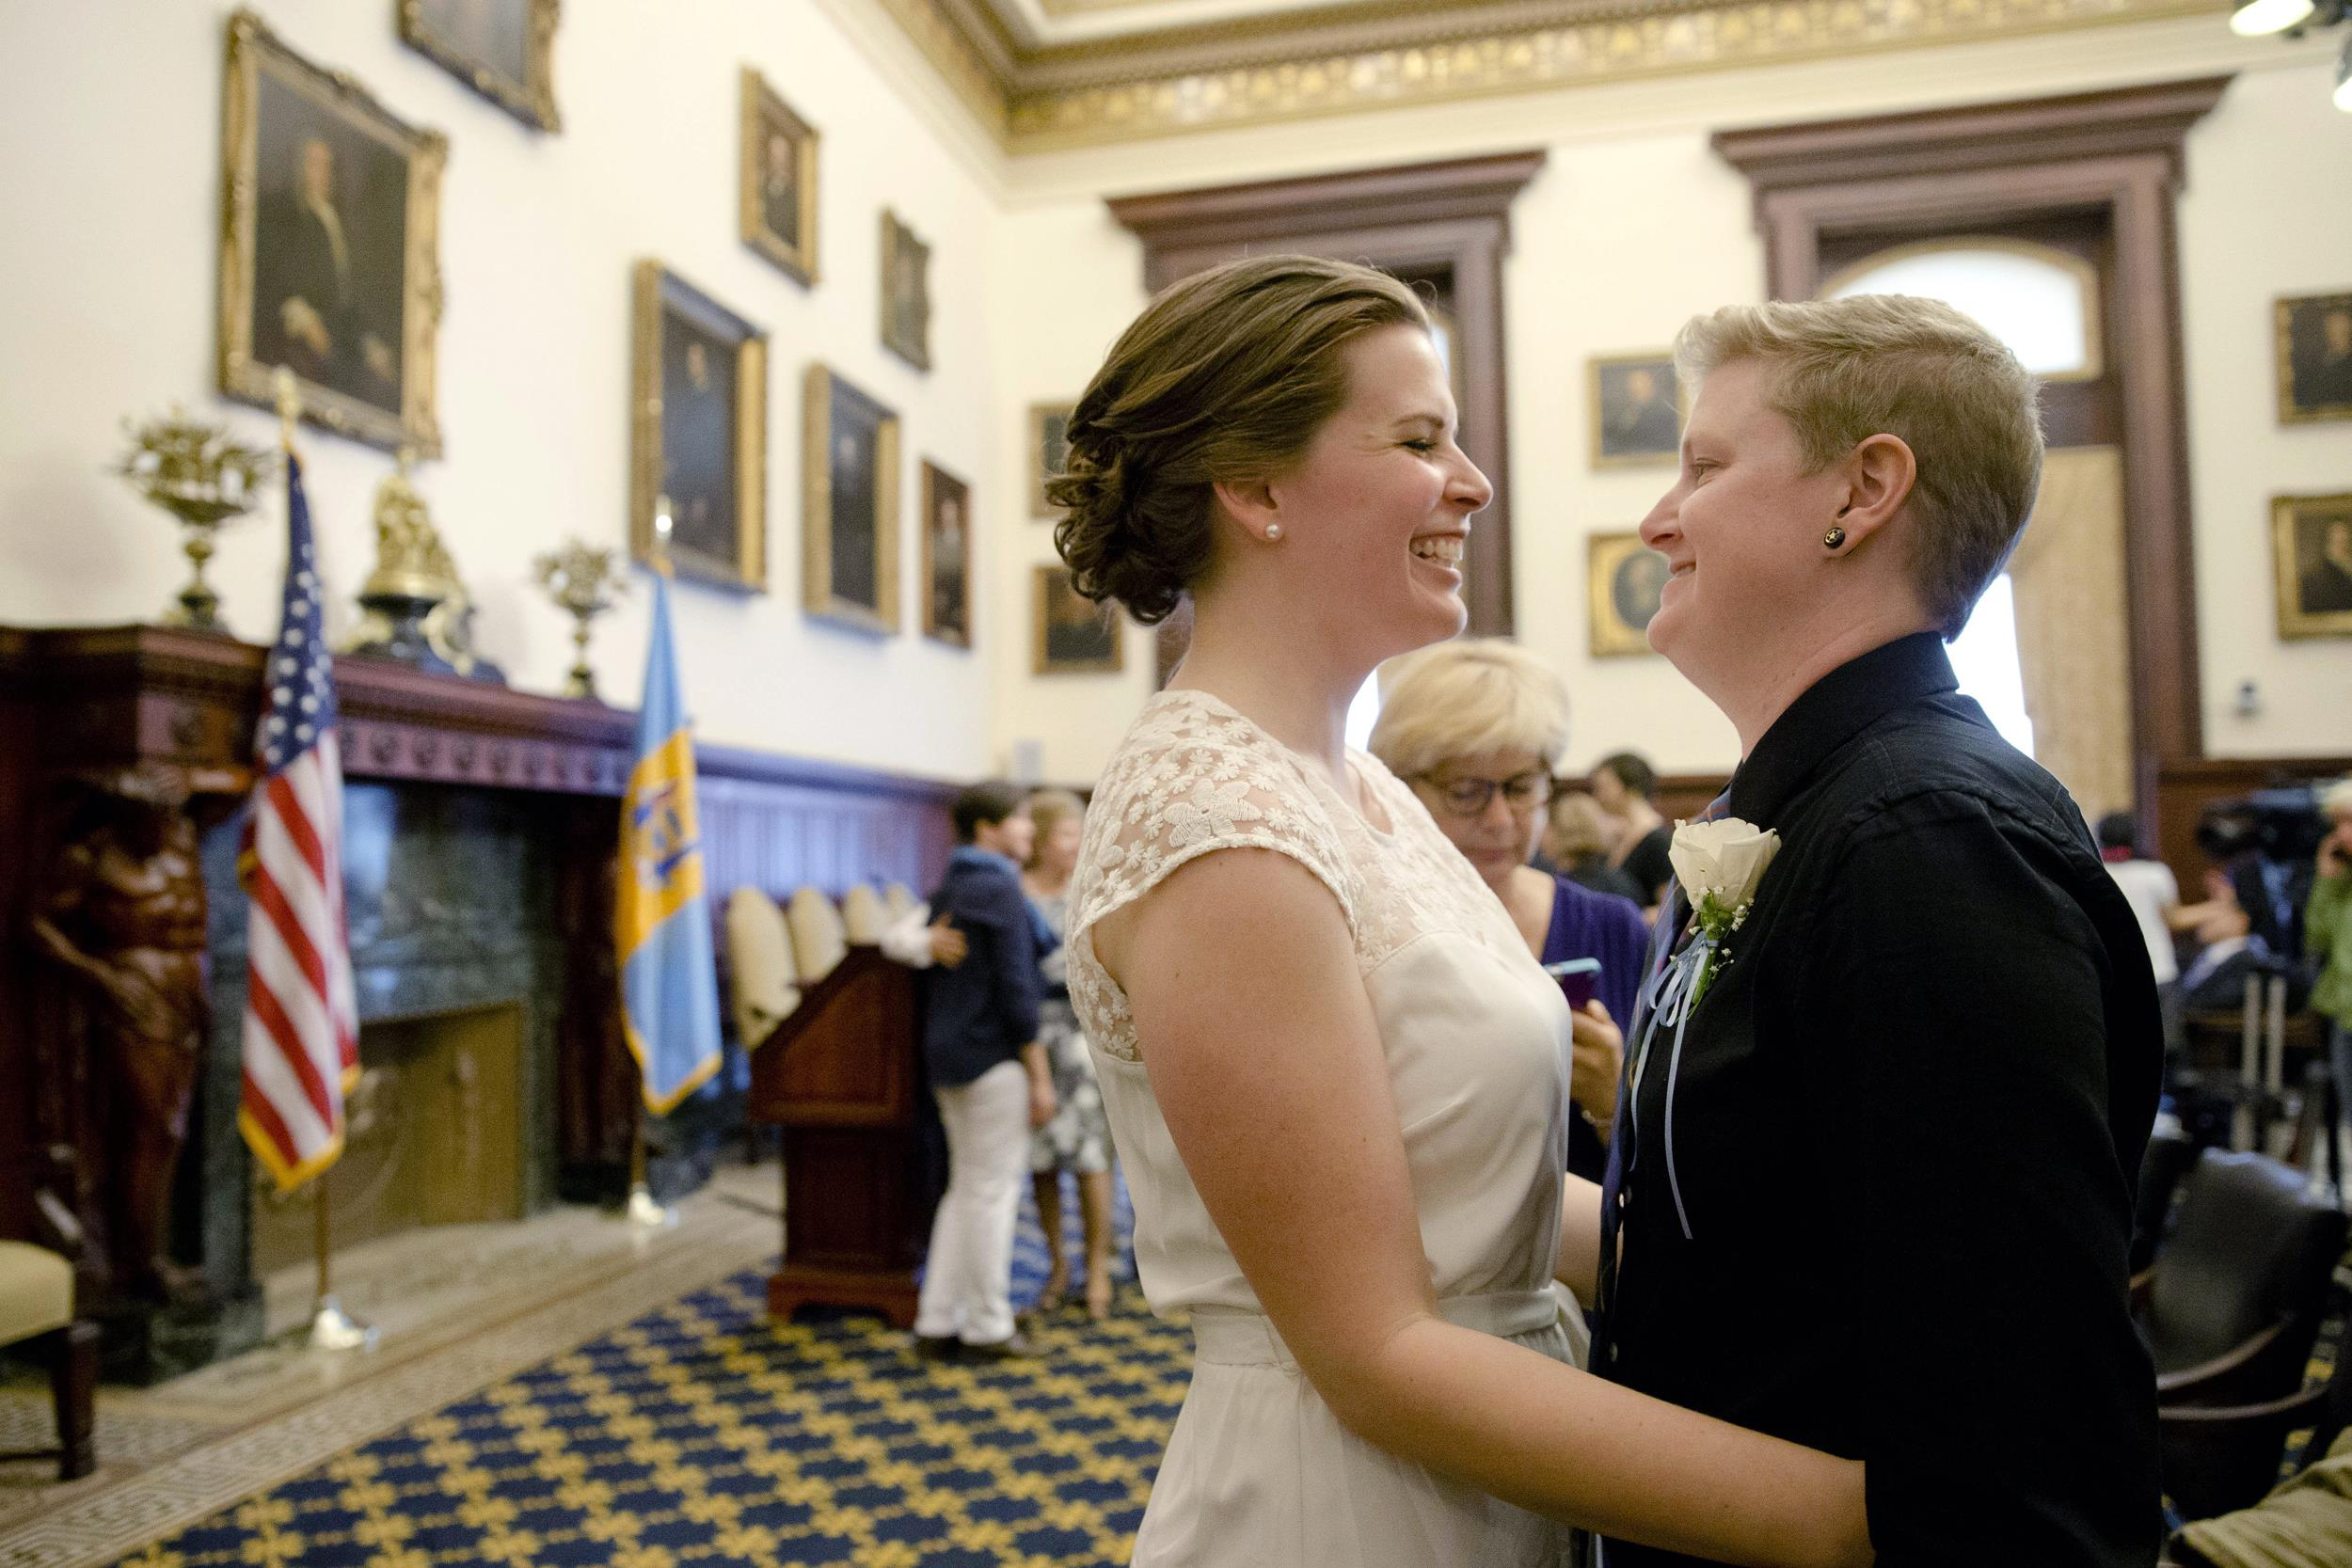 Image: Corey Crawford, right, and Jessica Samph smile to each other before their wedding at City Hall in Philadelphia